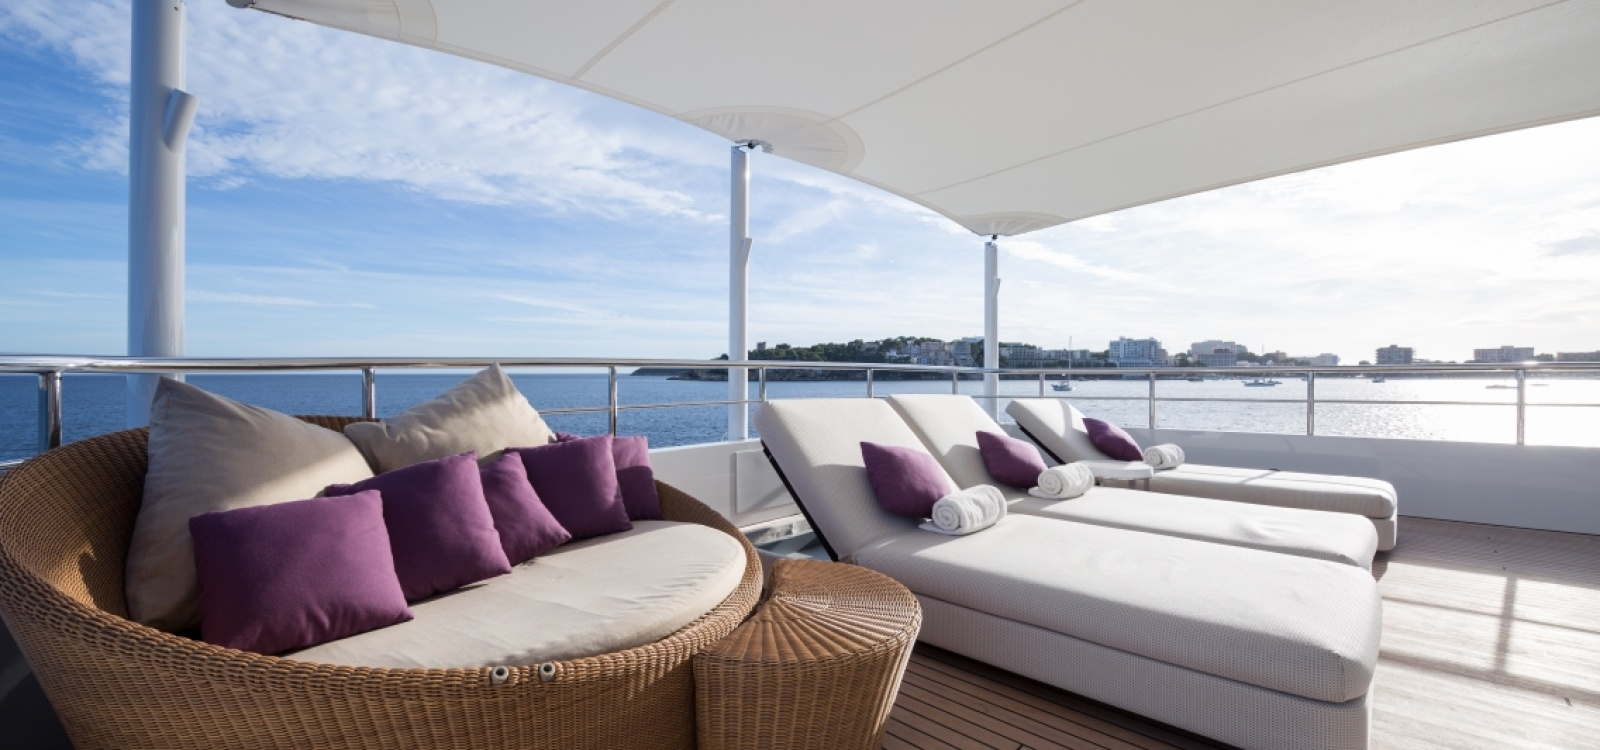 5 Rooms, Motor Yacht, For Charter, 9 Bathrooms, Listing ID 1073